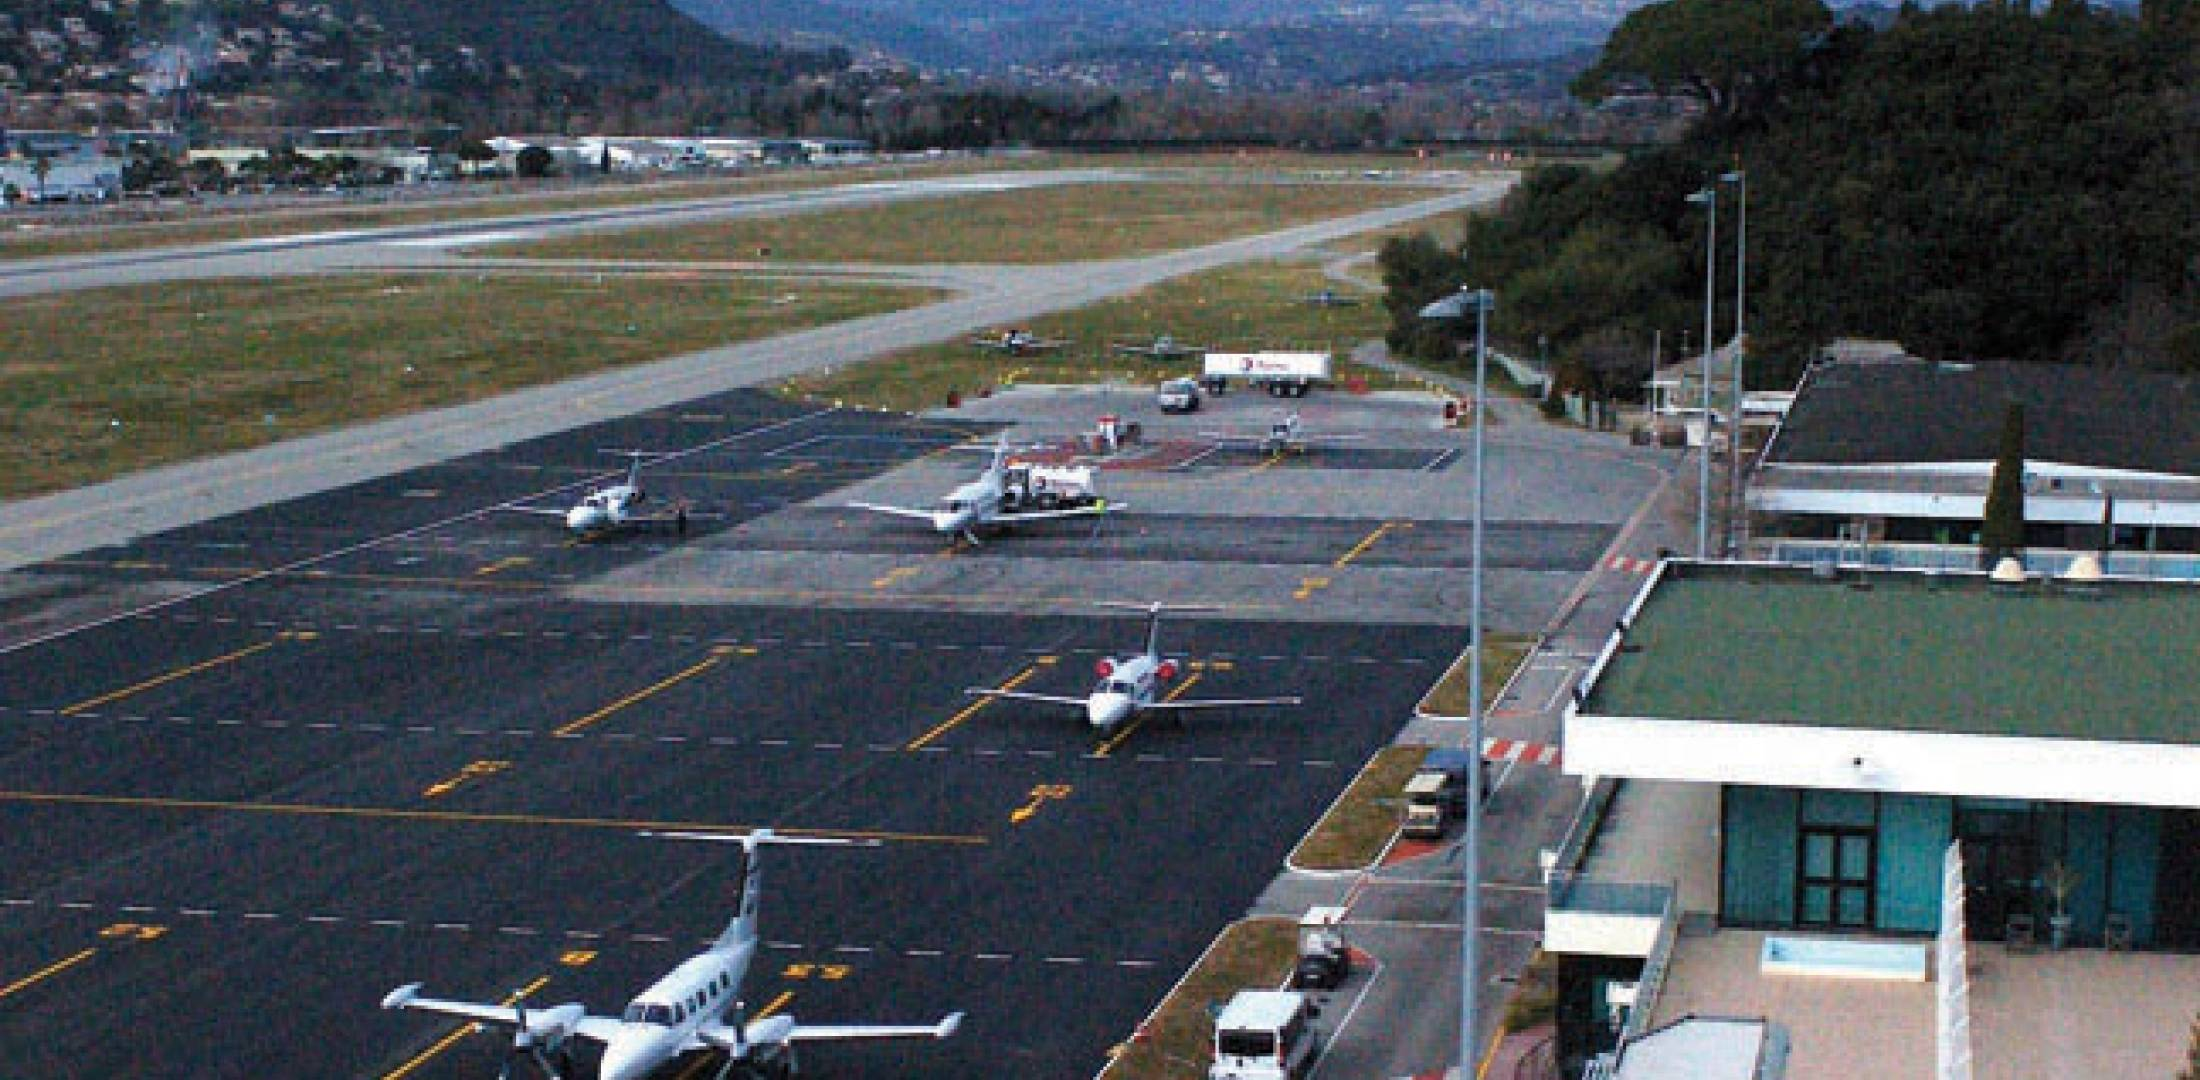 Cannes-Mandelieu Airport might become one of the first members of the Mediterranean Business Aviation Airports Association.